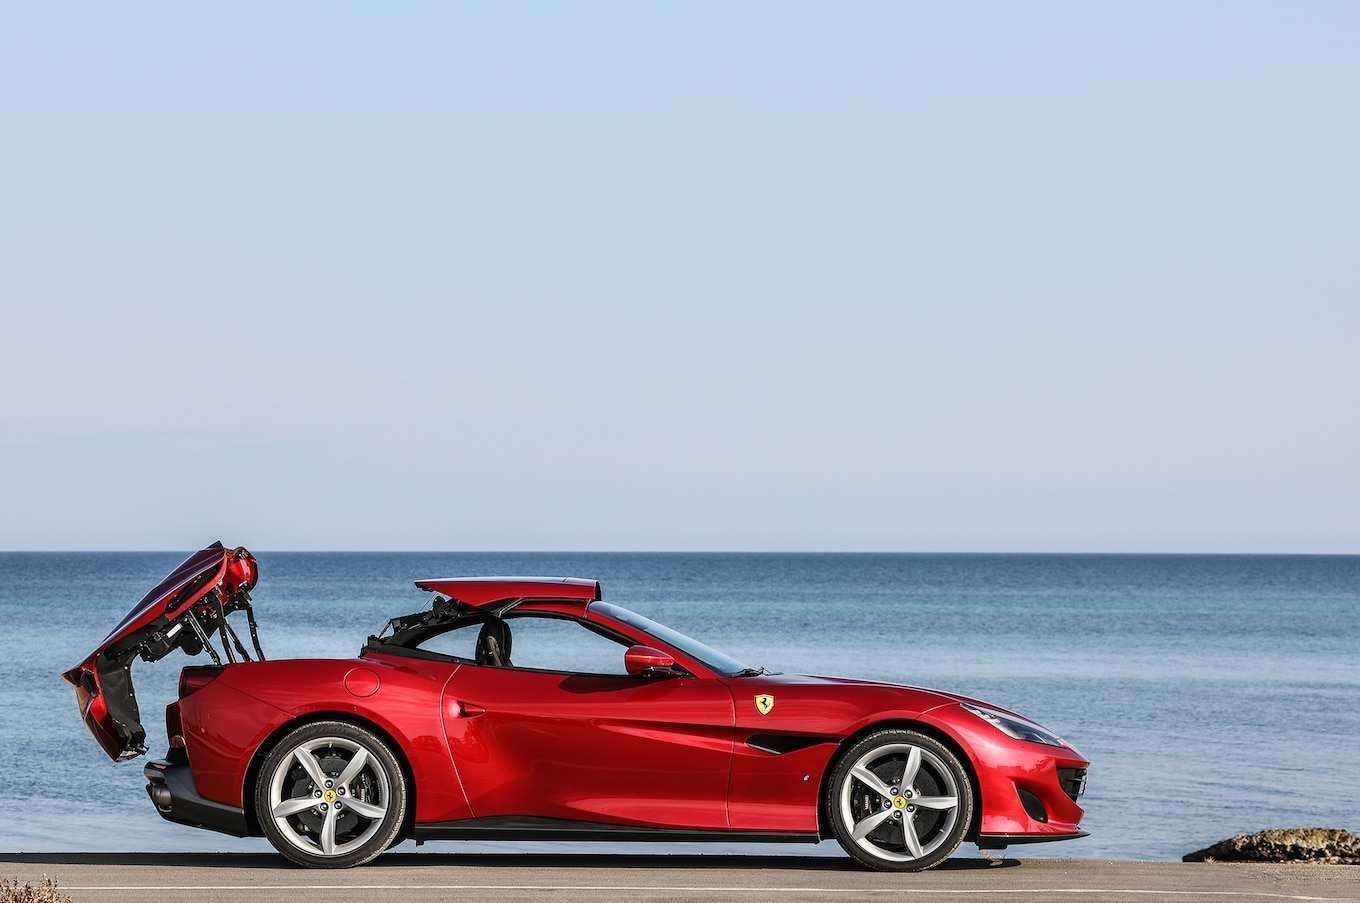 88 All New The Who Are Ferrari Drivers For 2019 Exterior And Interior Review Images with The Who Are Ferrari Drivers For 2019 Exterior And Interior Review